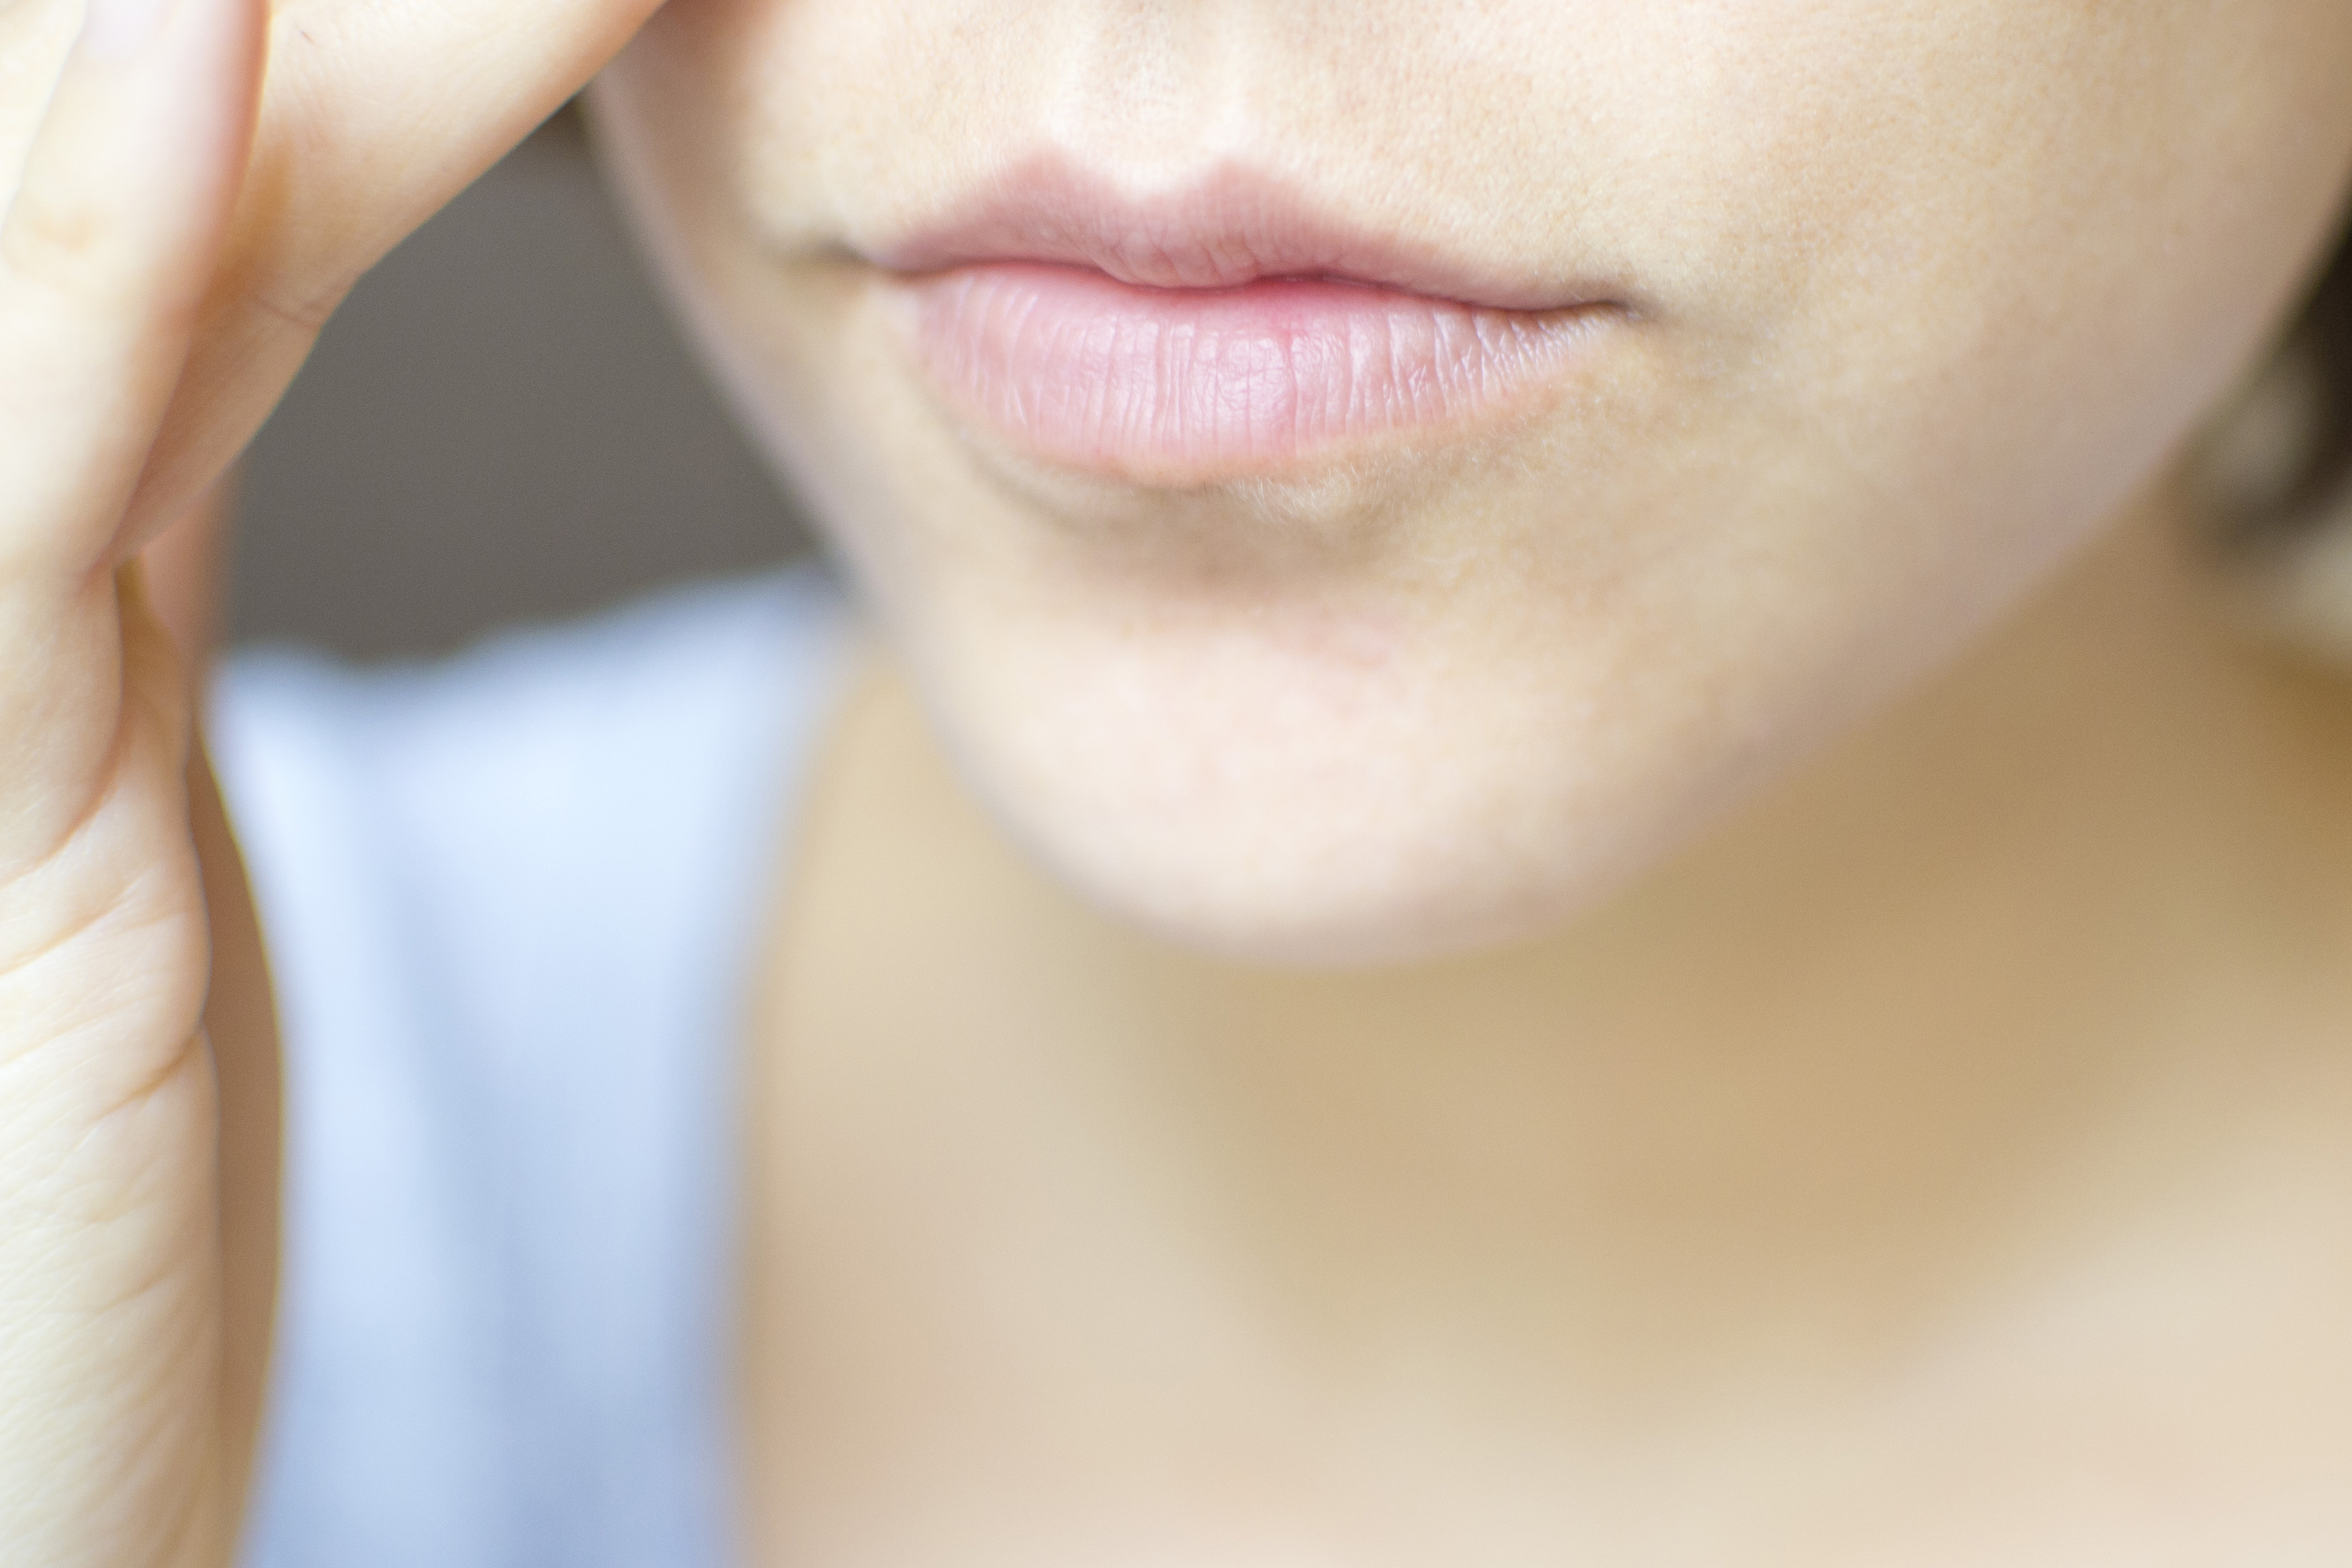 how to get rid of chapped lips in 40 minutes | livestrong, Skeleton